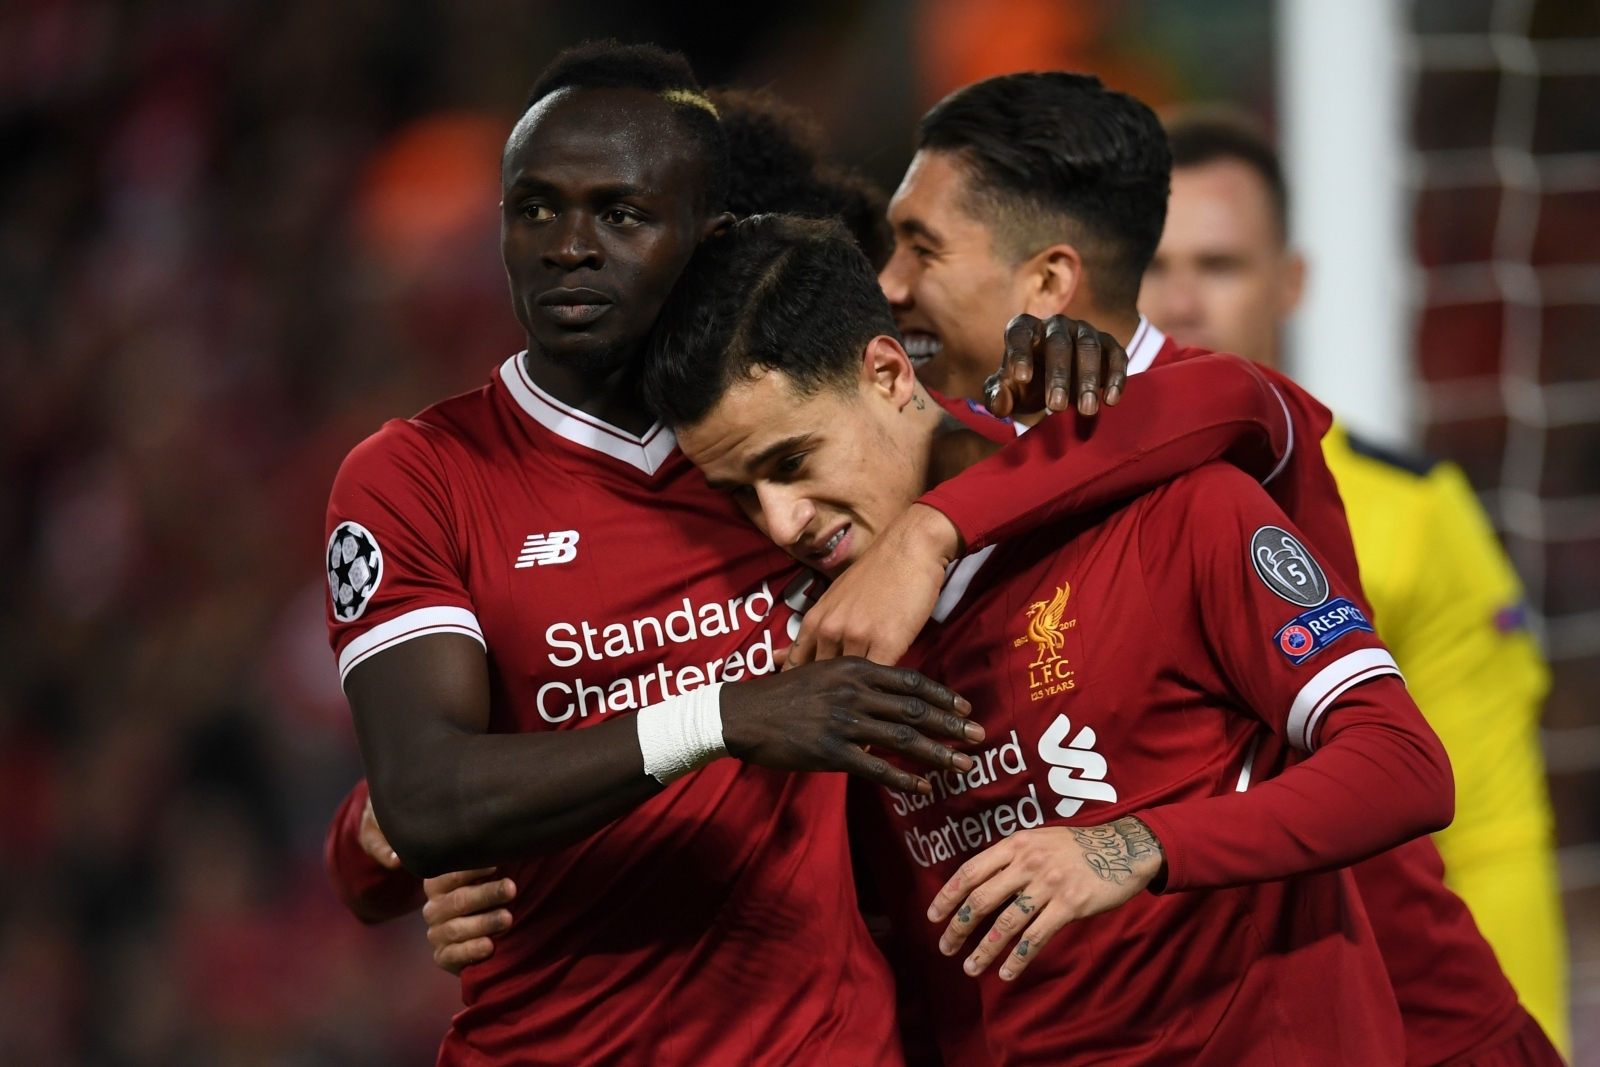 Sadio Mane and Philippe Coutinho